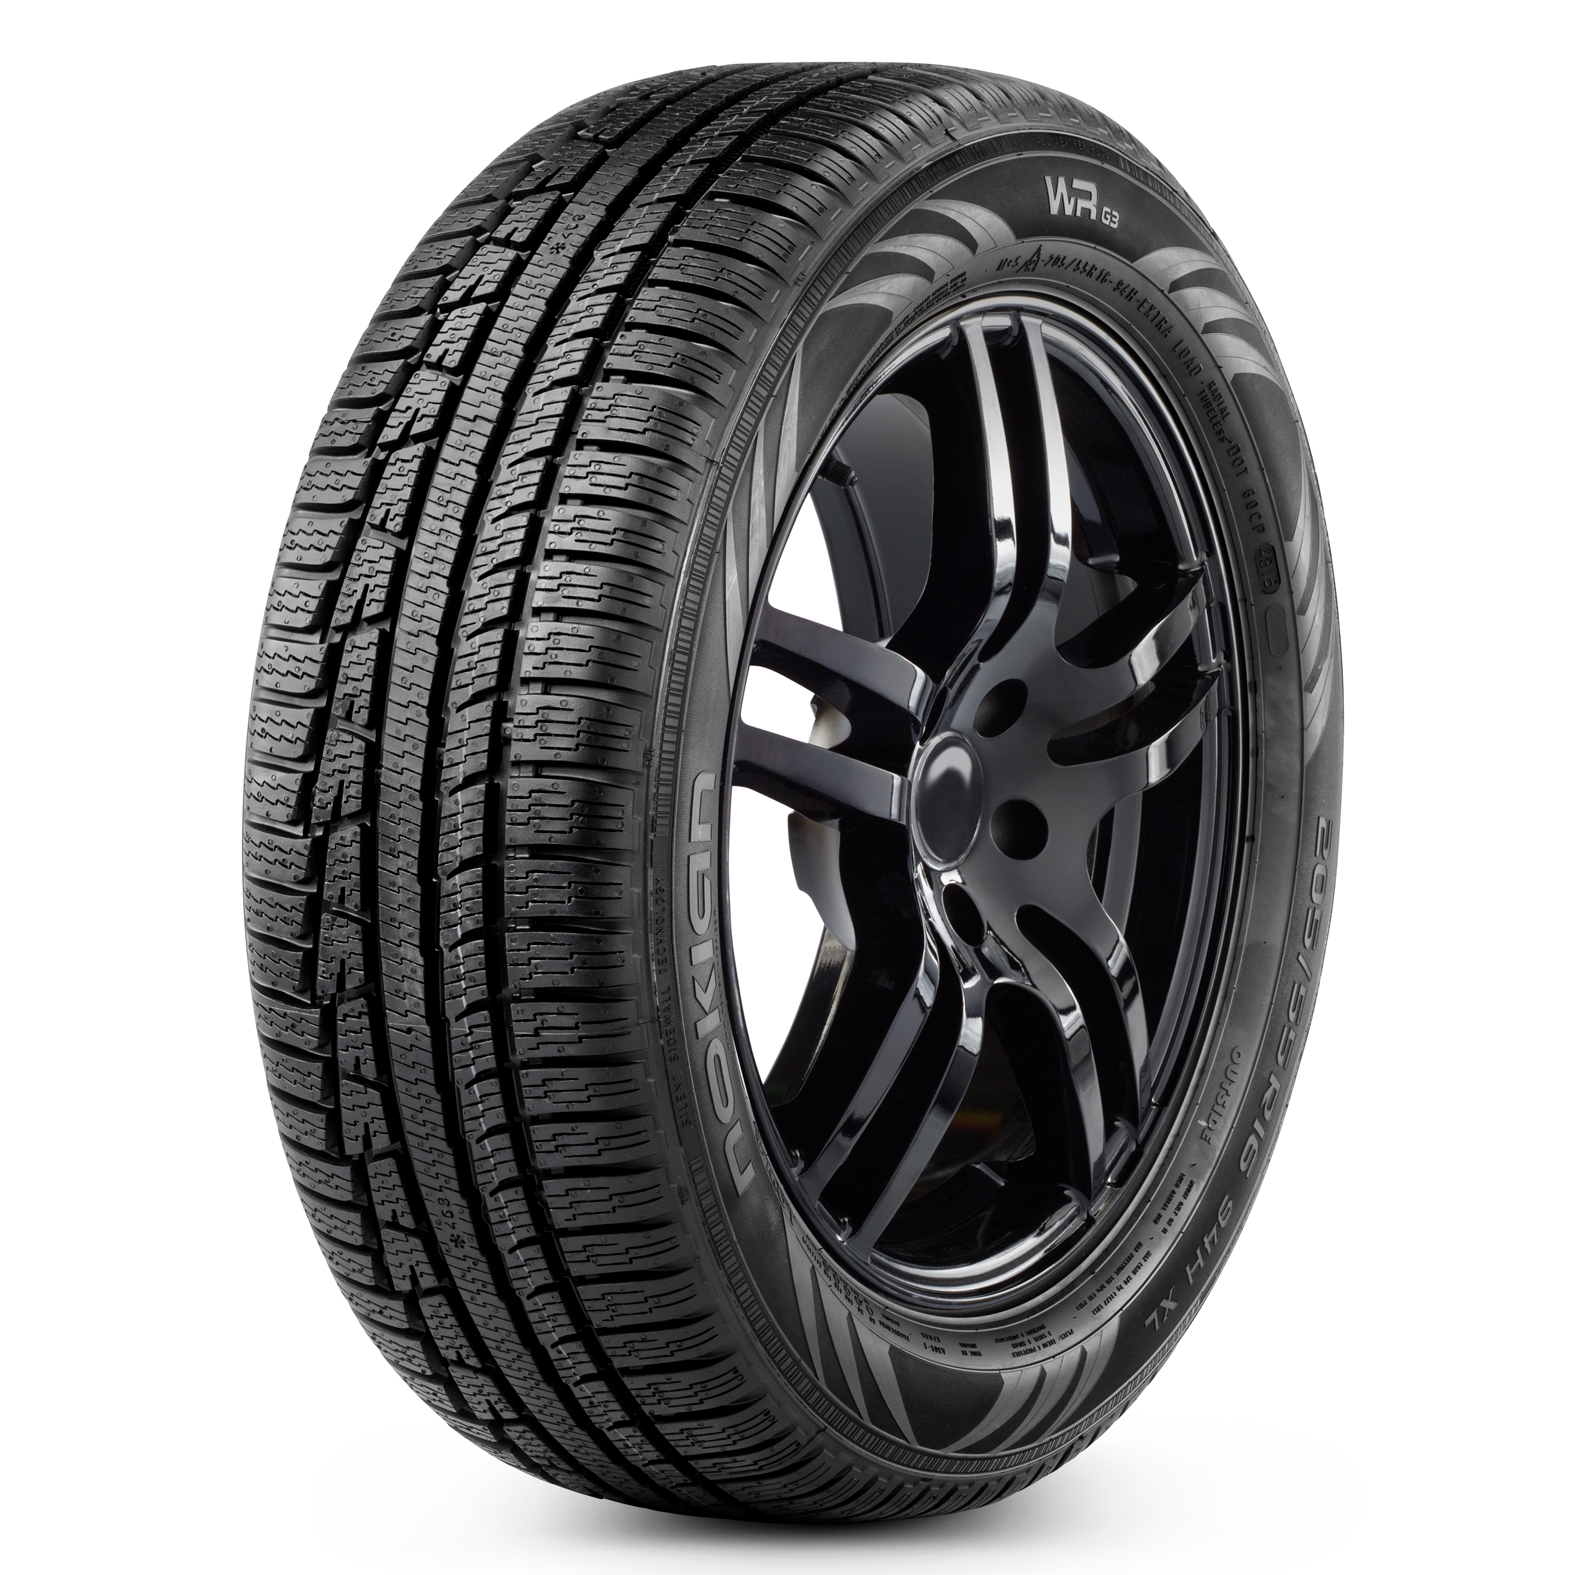 Nokian Tyres WRG3 tire - angle